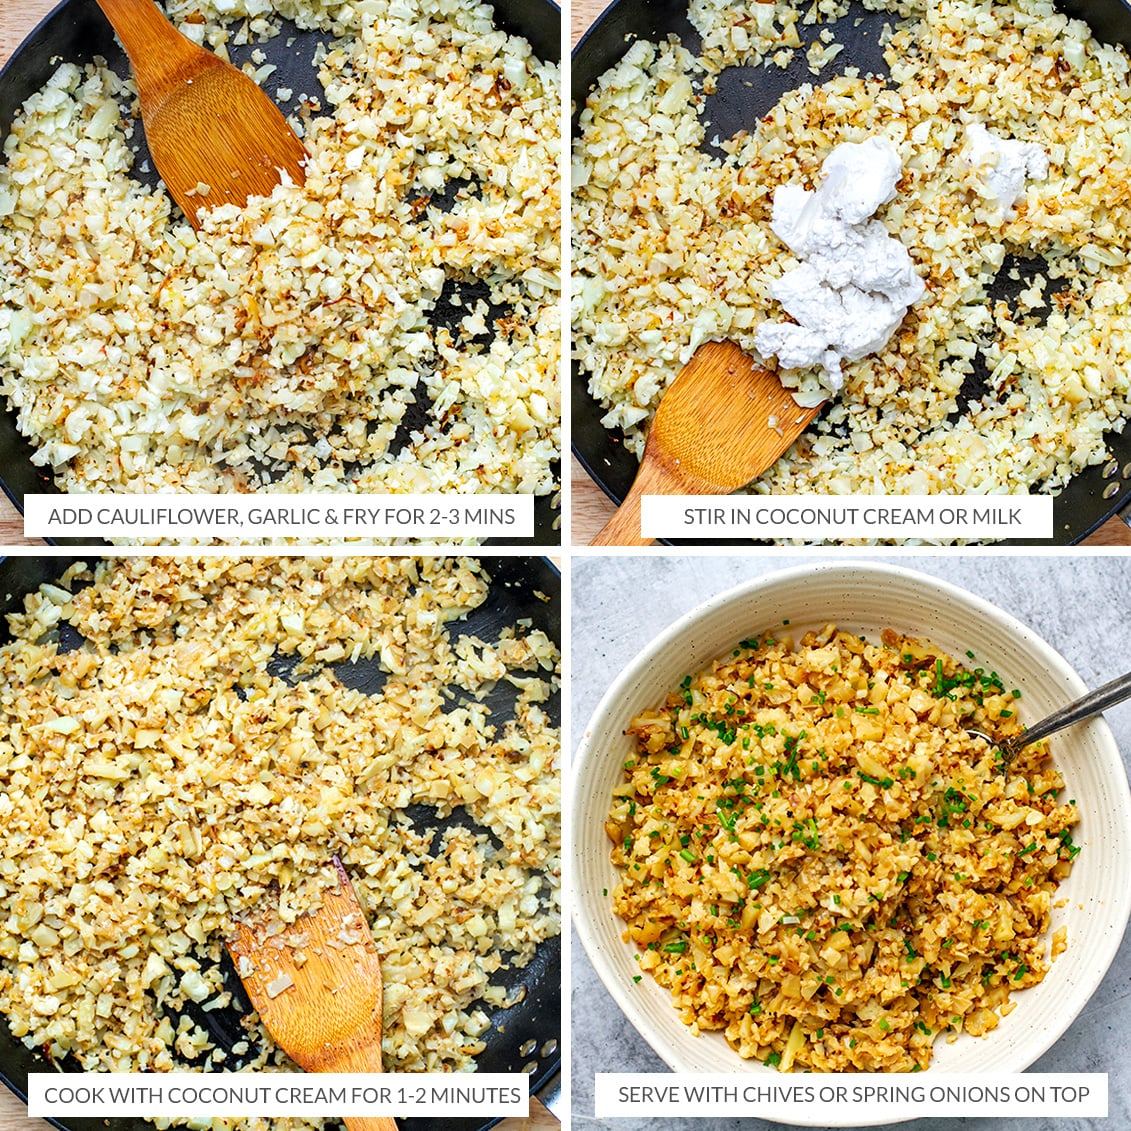 How to cook cauliflower rice in a frying pan